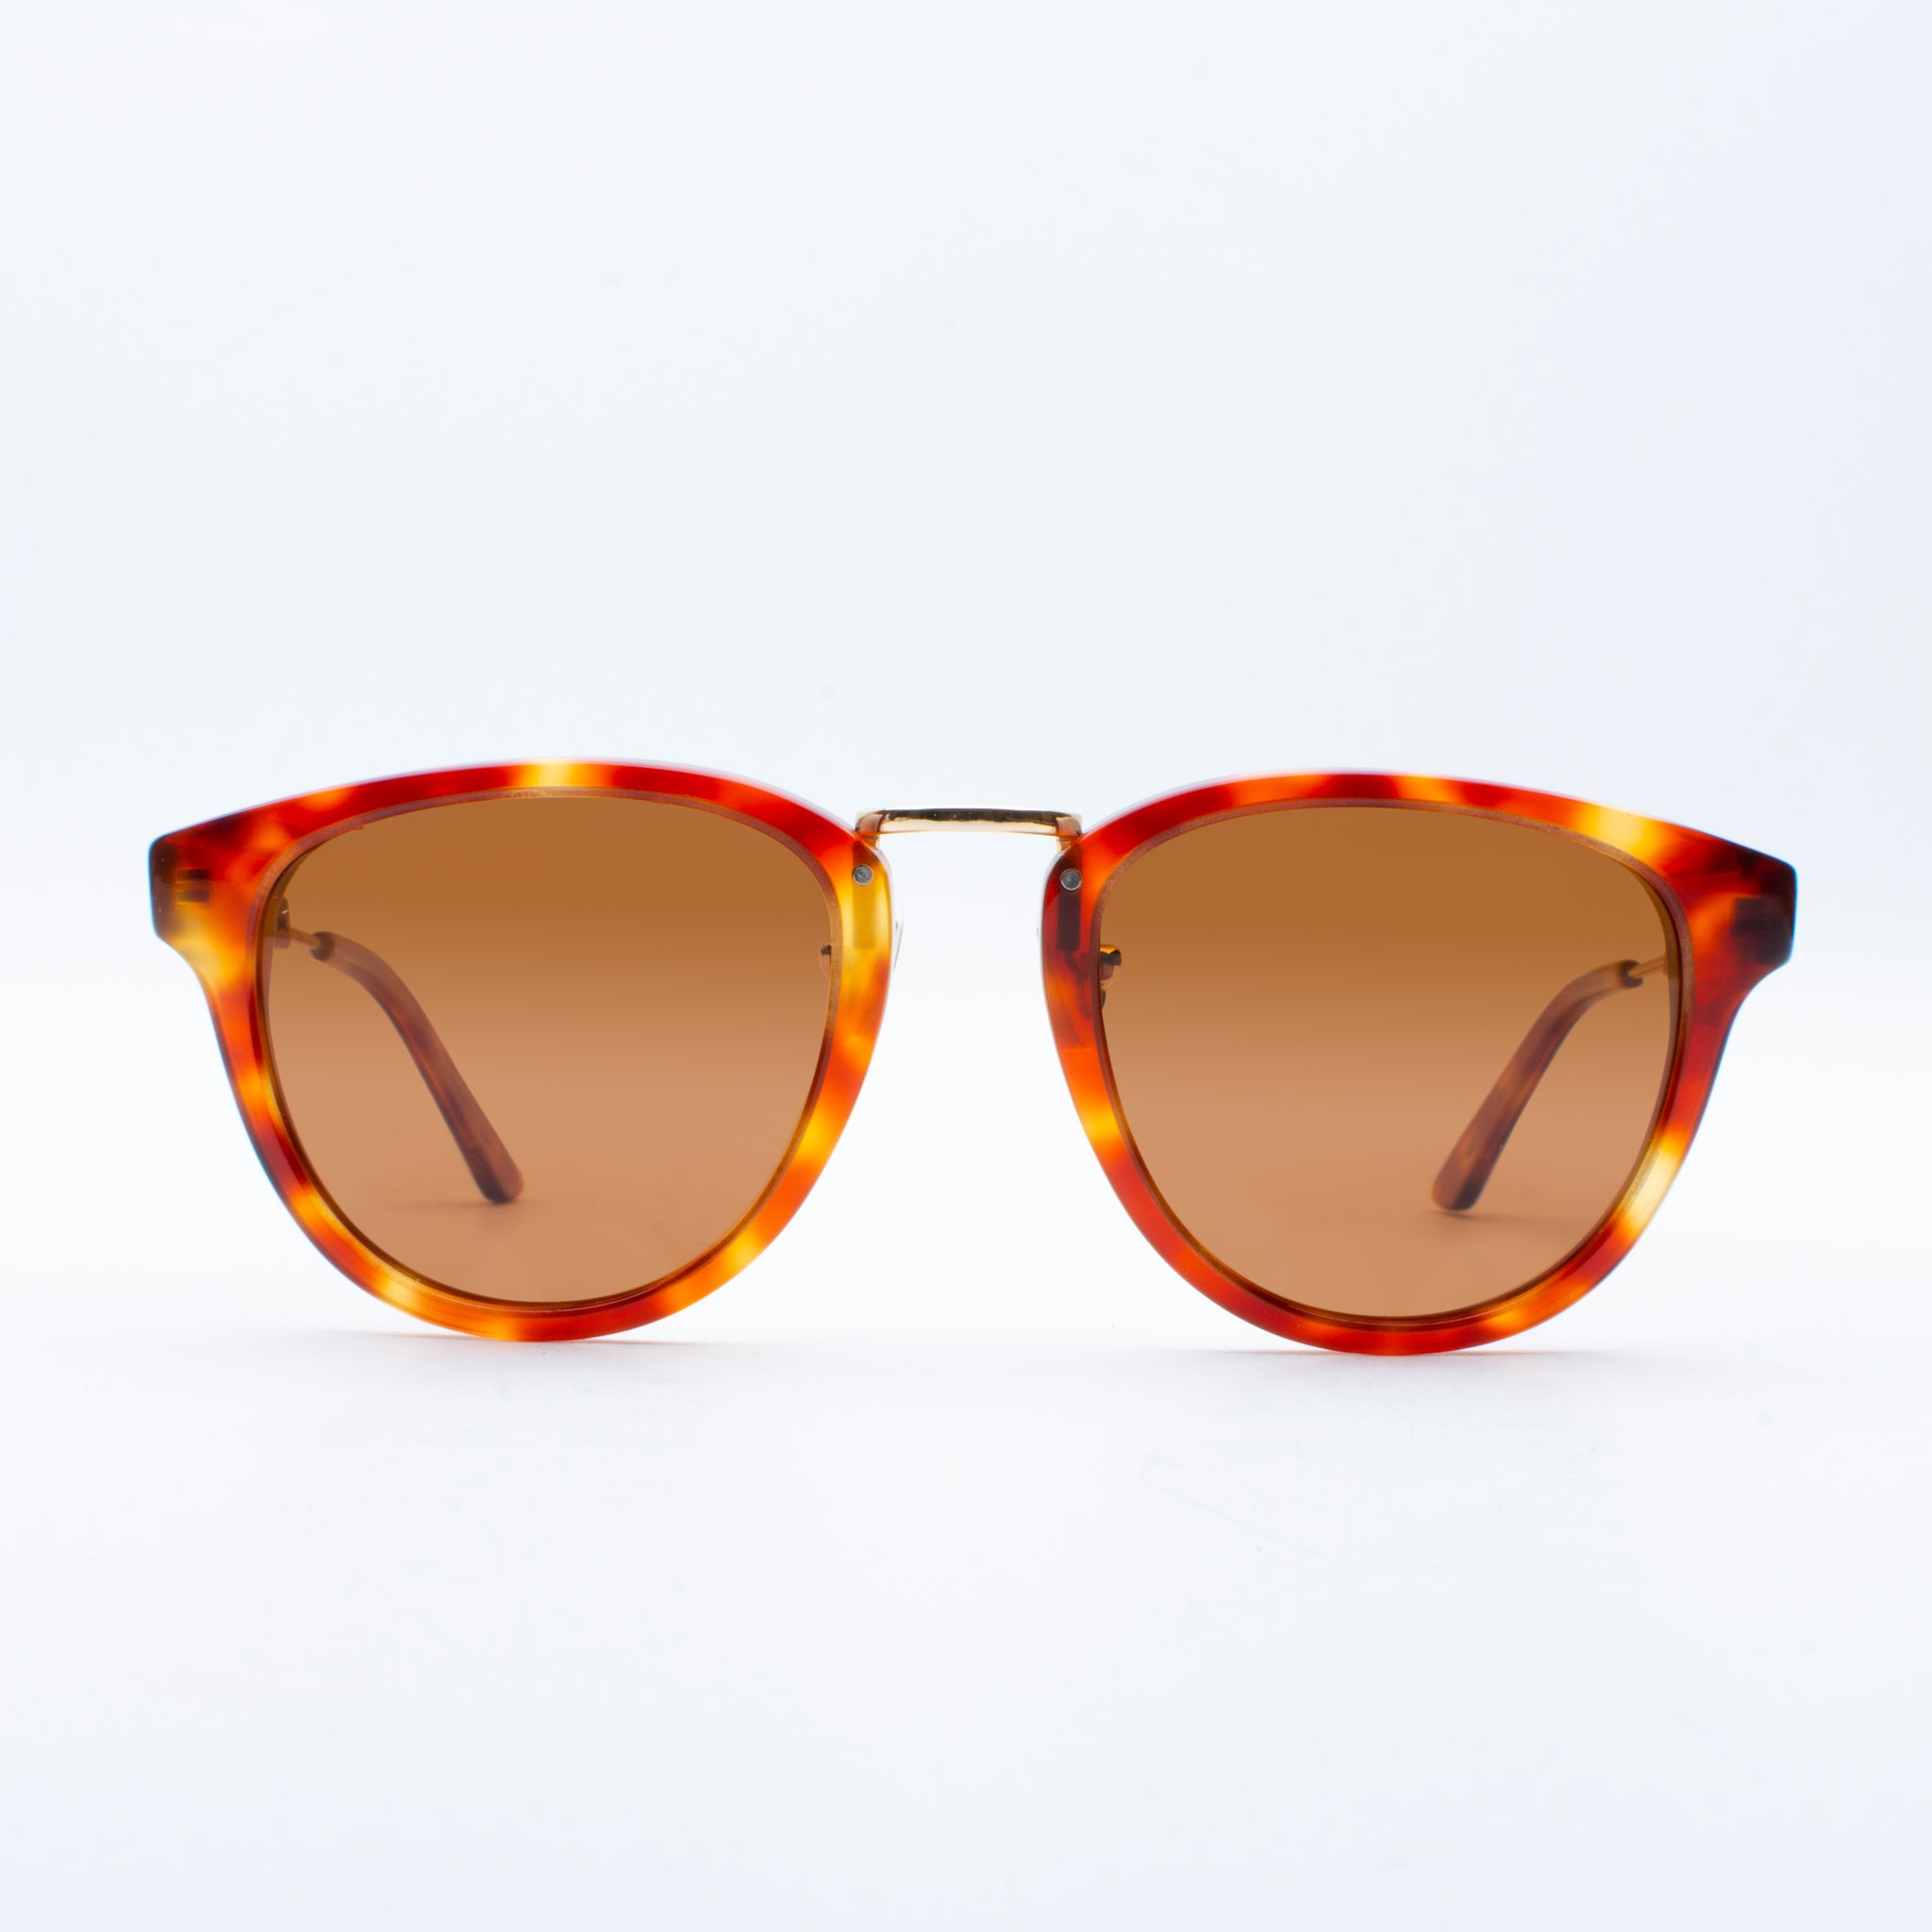 WOODEN SUNGLASSES KILA RED TORTOISE SUKI